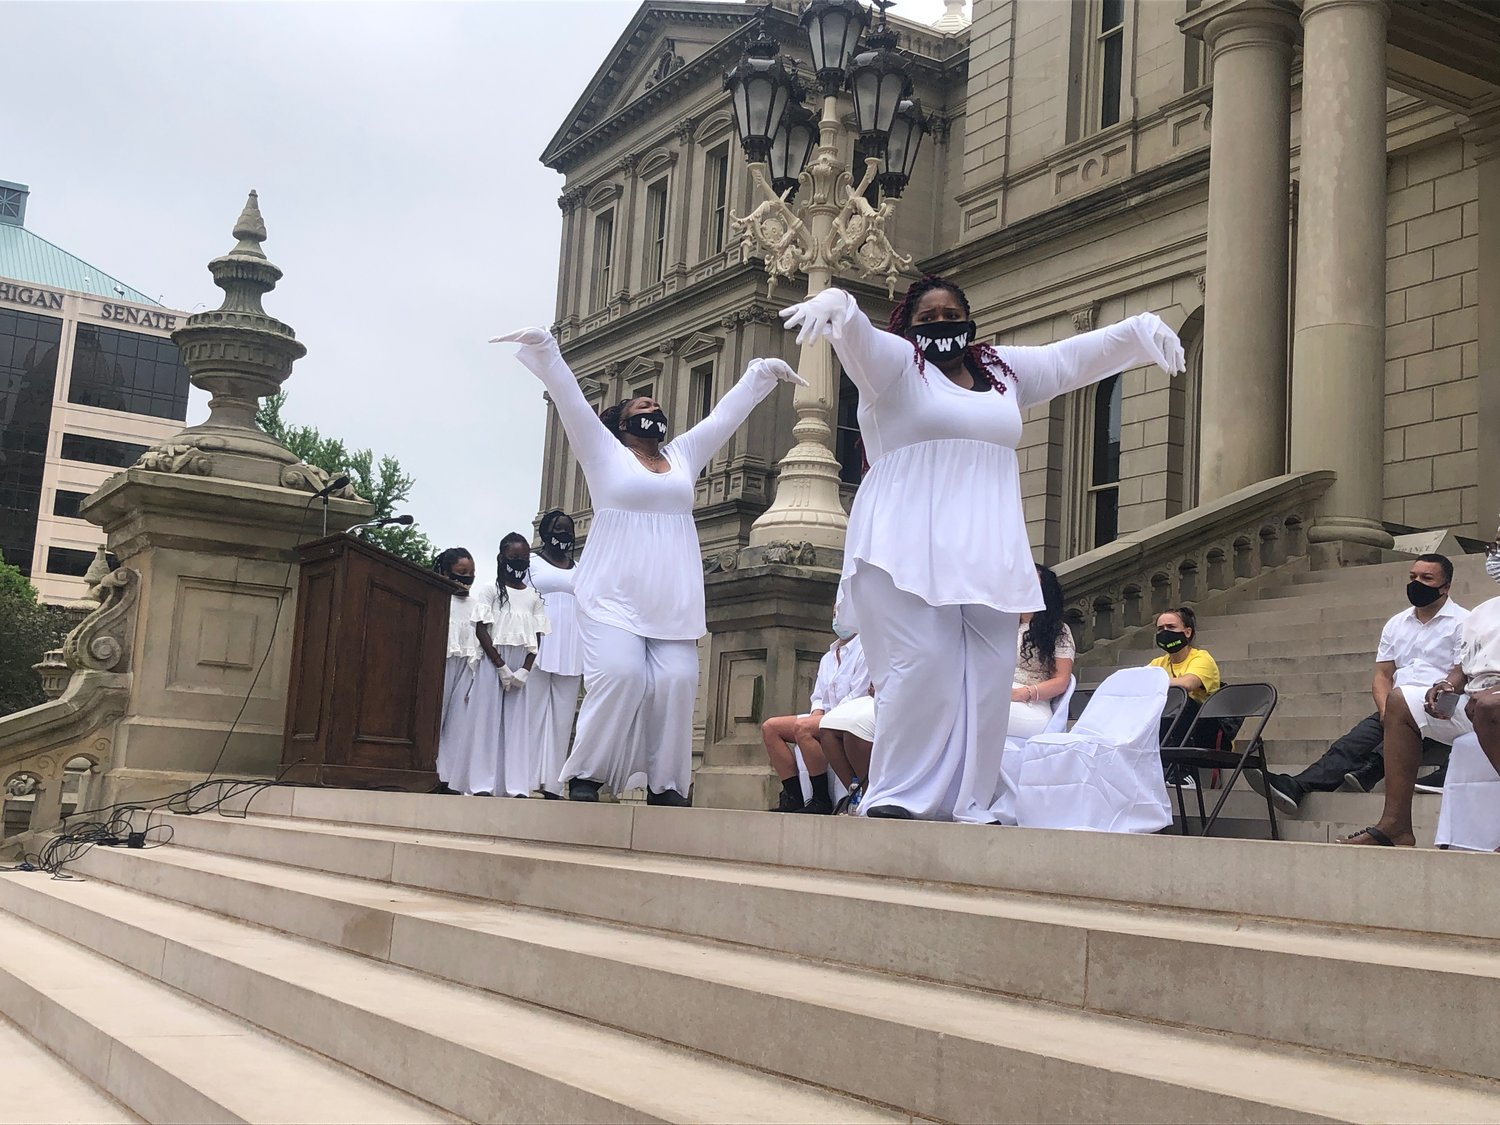 The dance groupWorship Without Words entertaining at the Capitol today as part of the 'Silent Sit-in Against Racism,' which continues till 2 p.m.